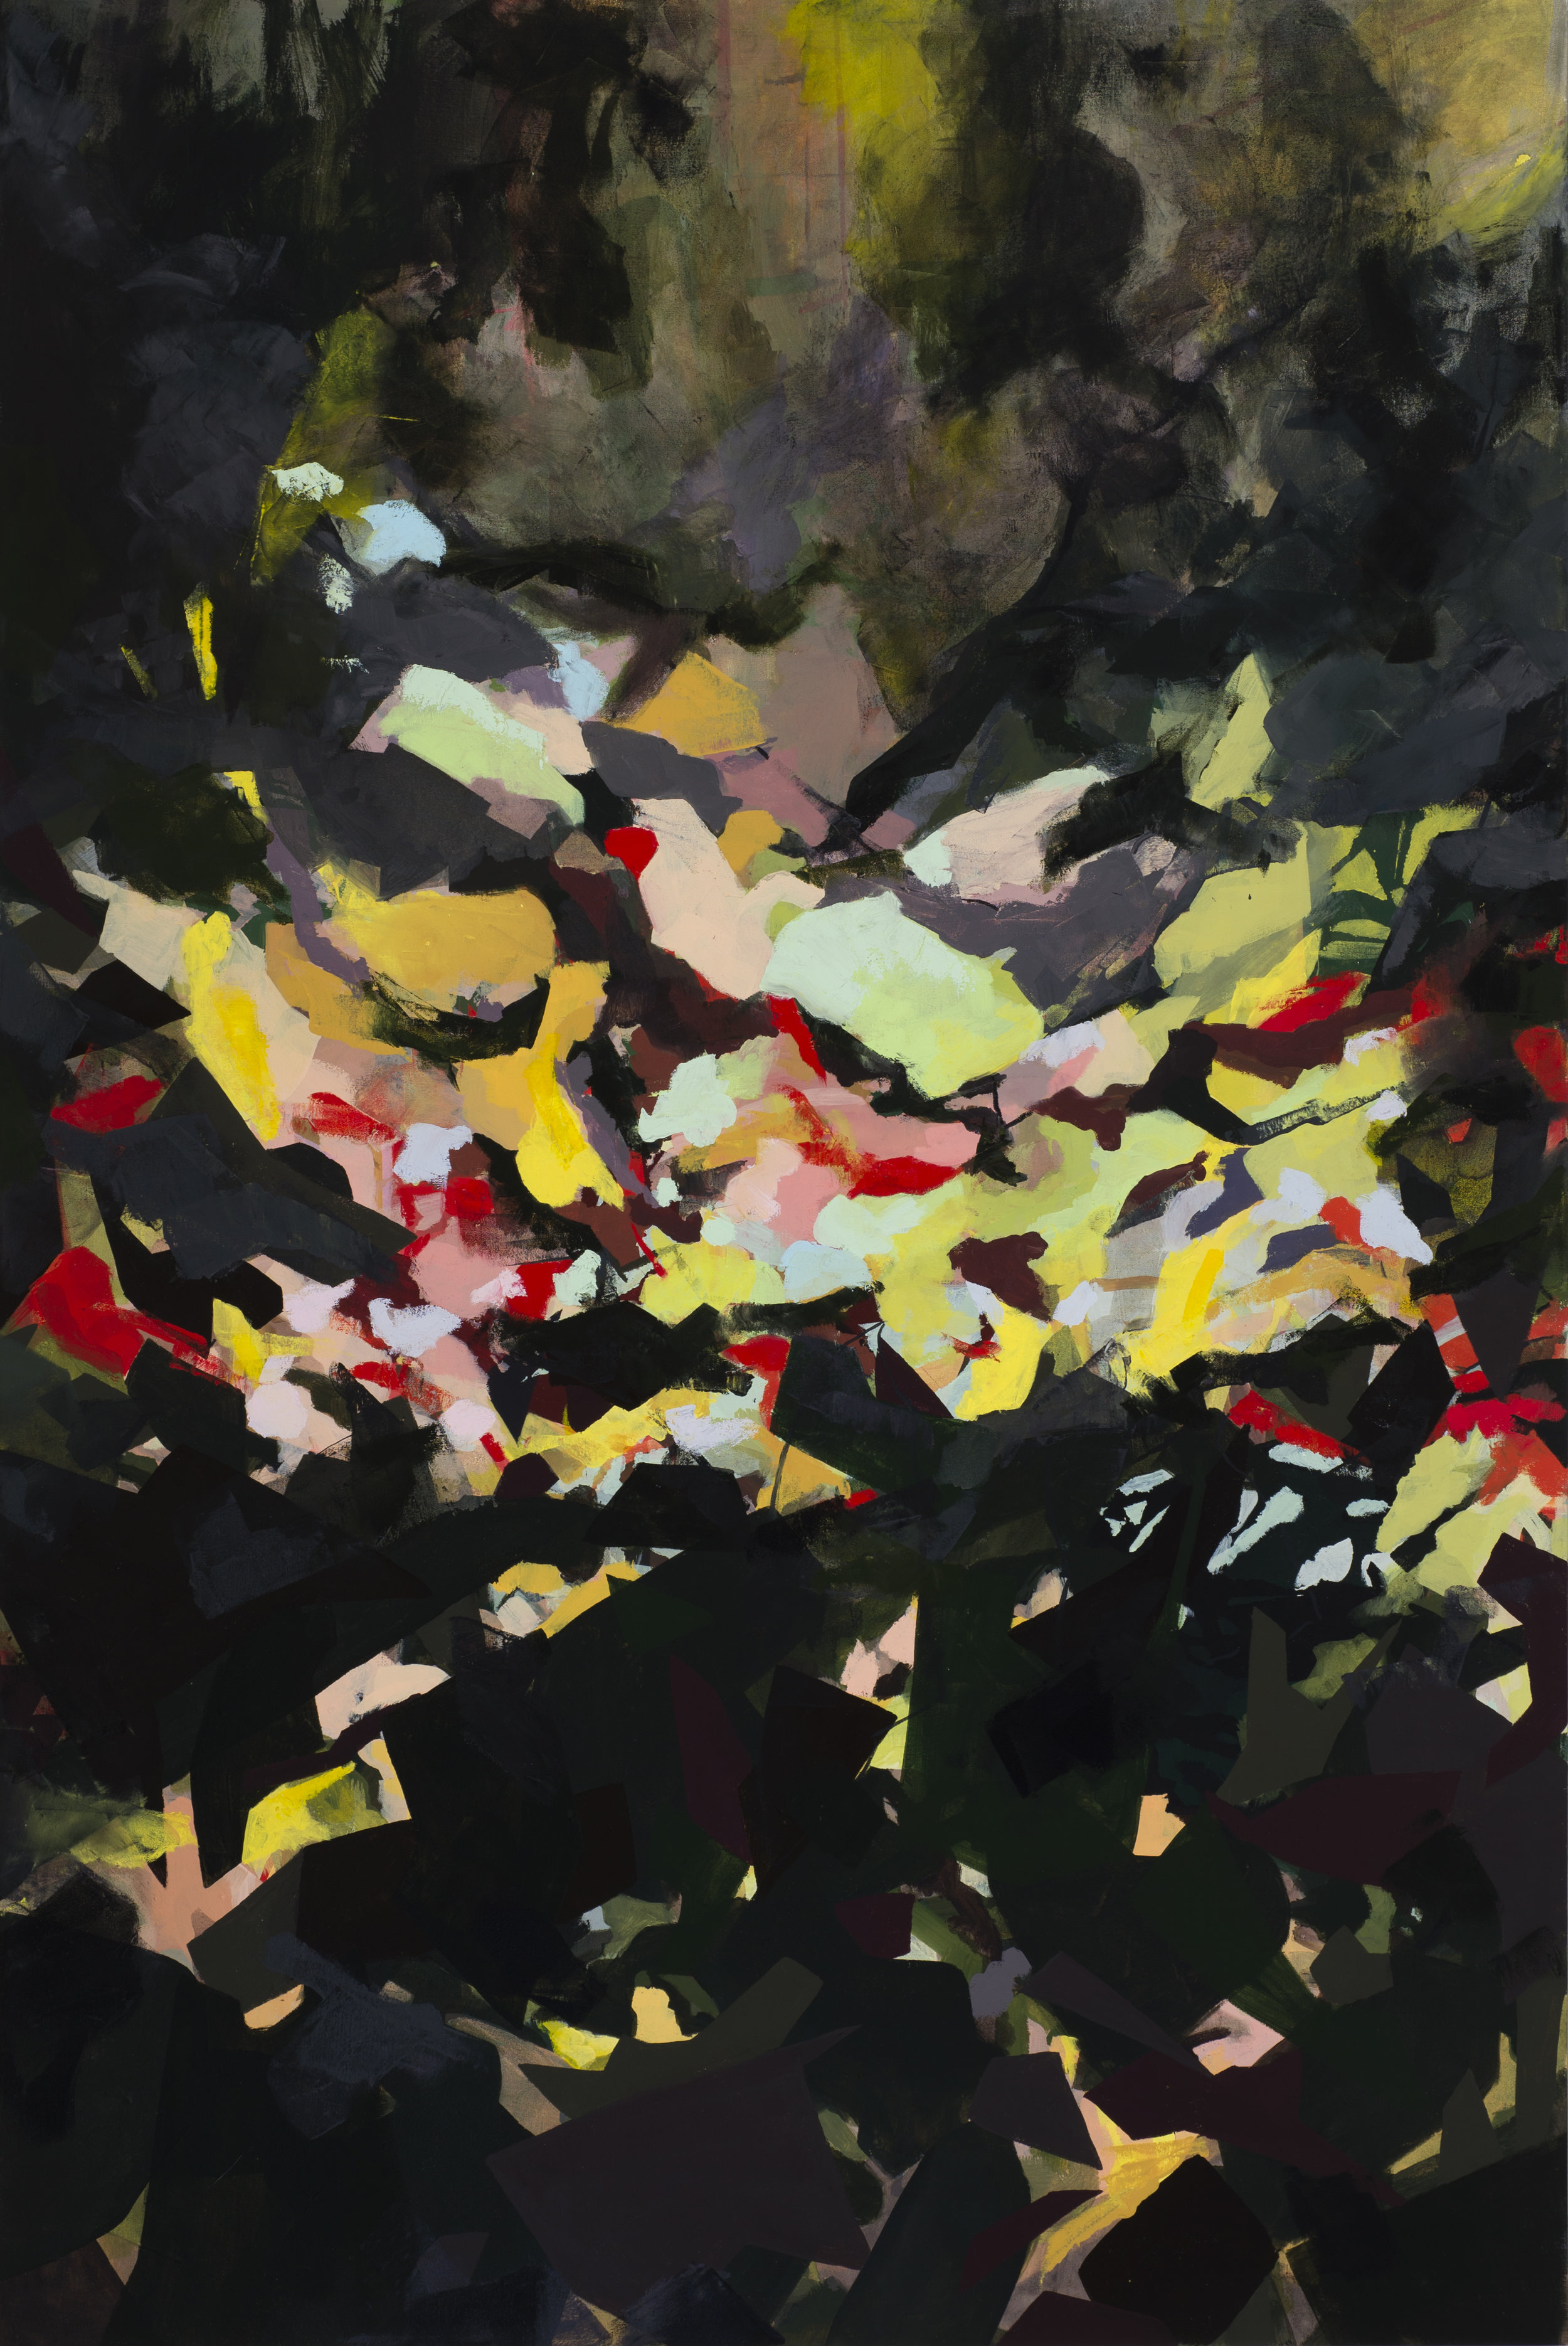 student work, david andree, student work, angela korbe, perception into abstraction, stage 8, 2017, oil on canvas, 48x72in.jpg